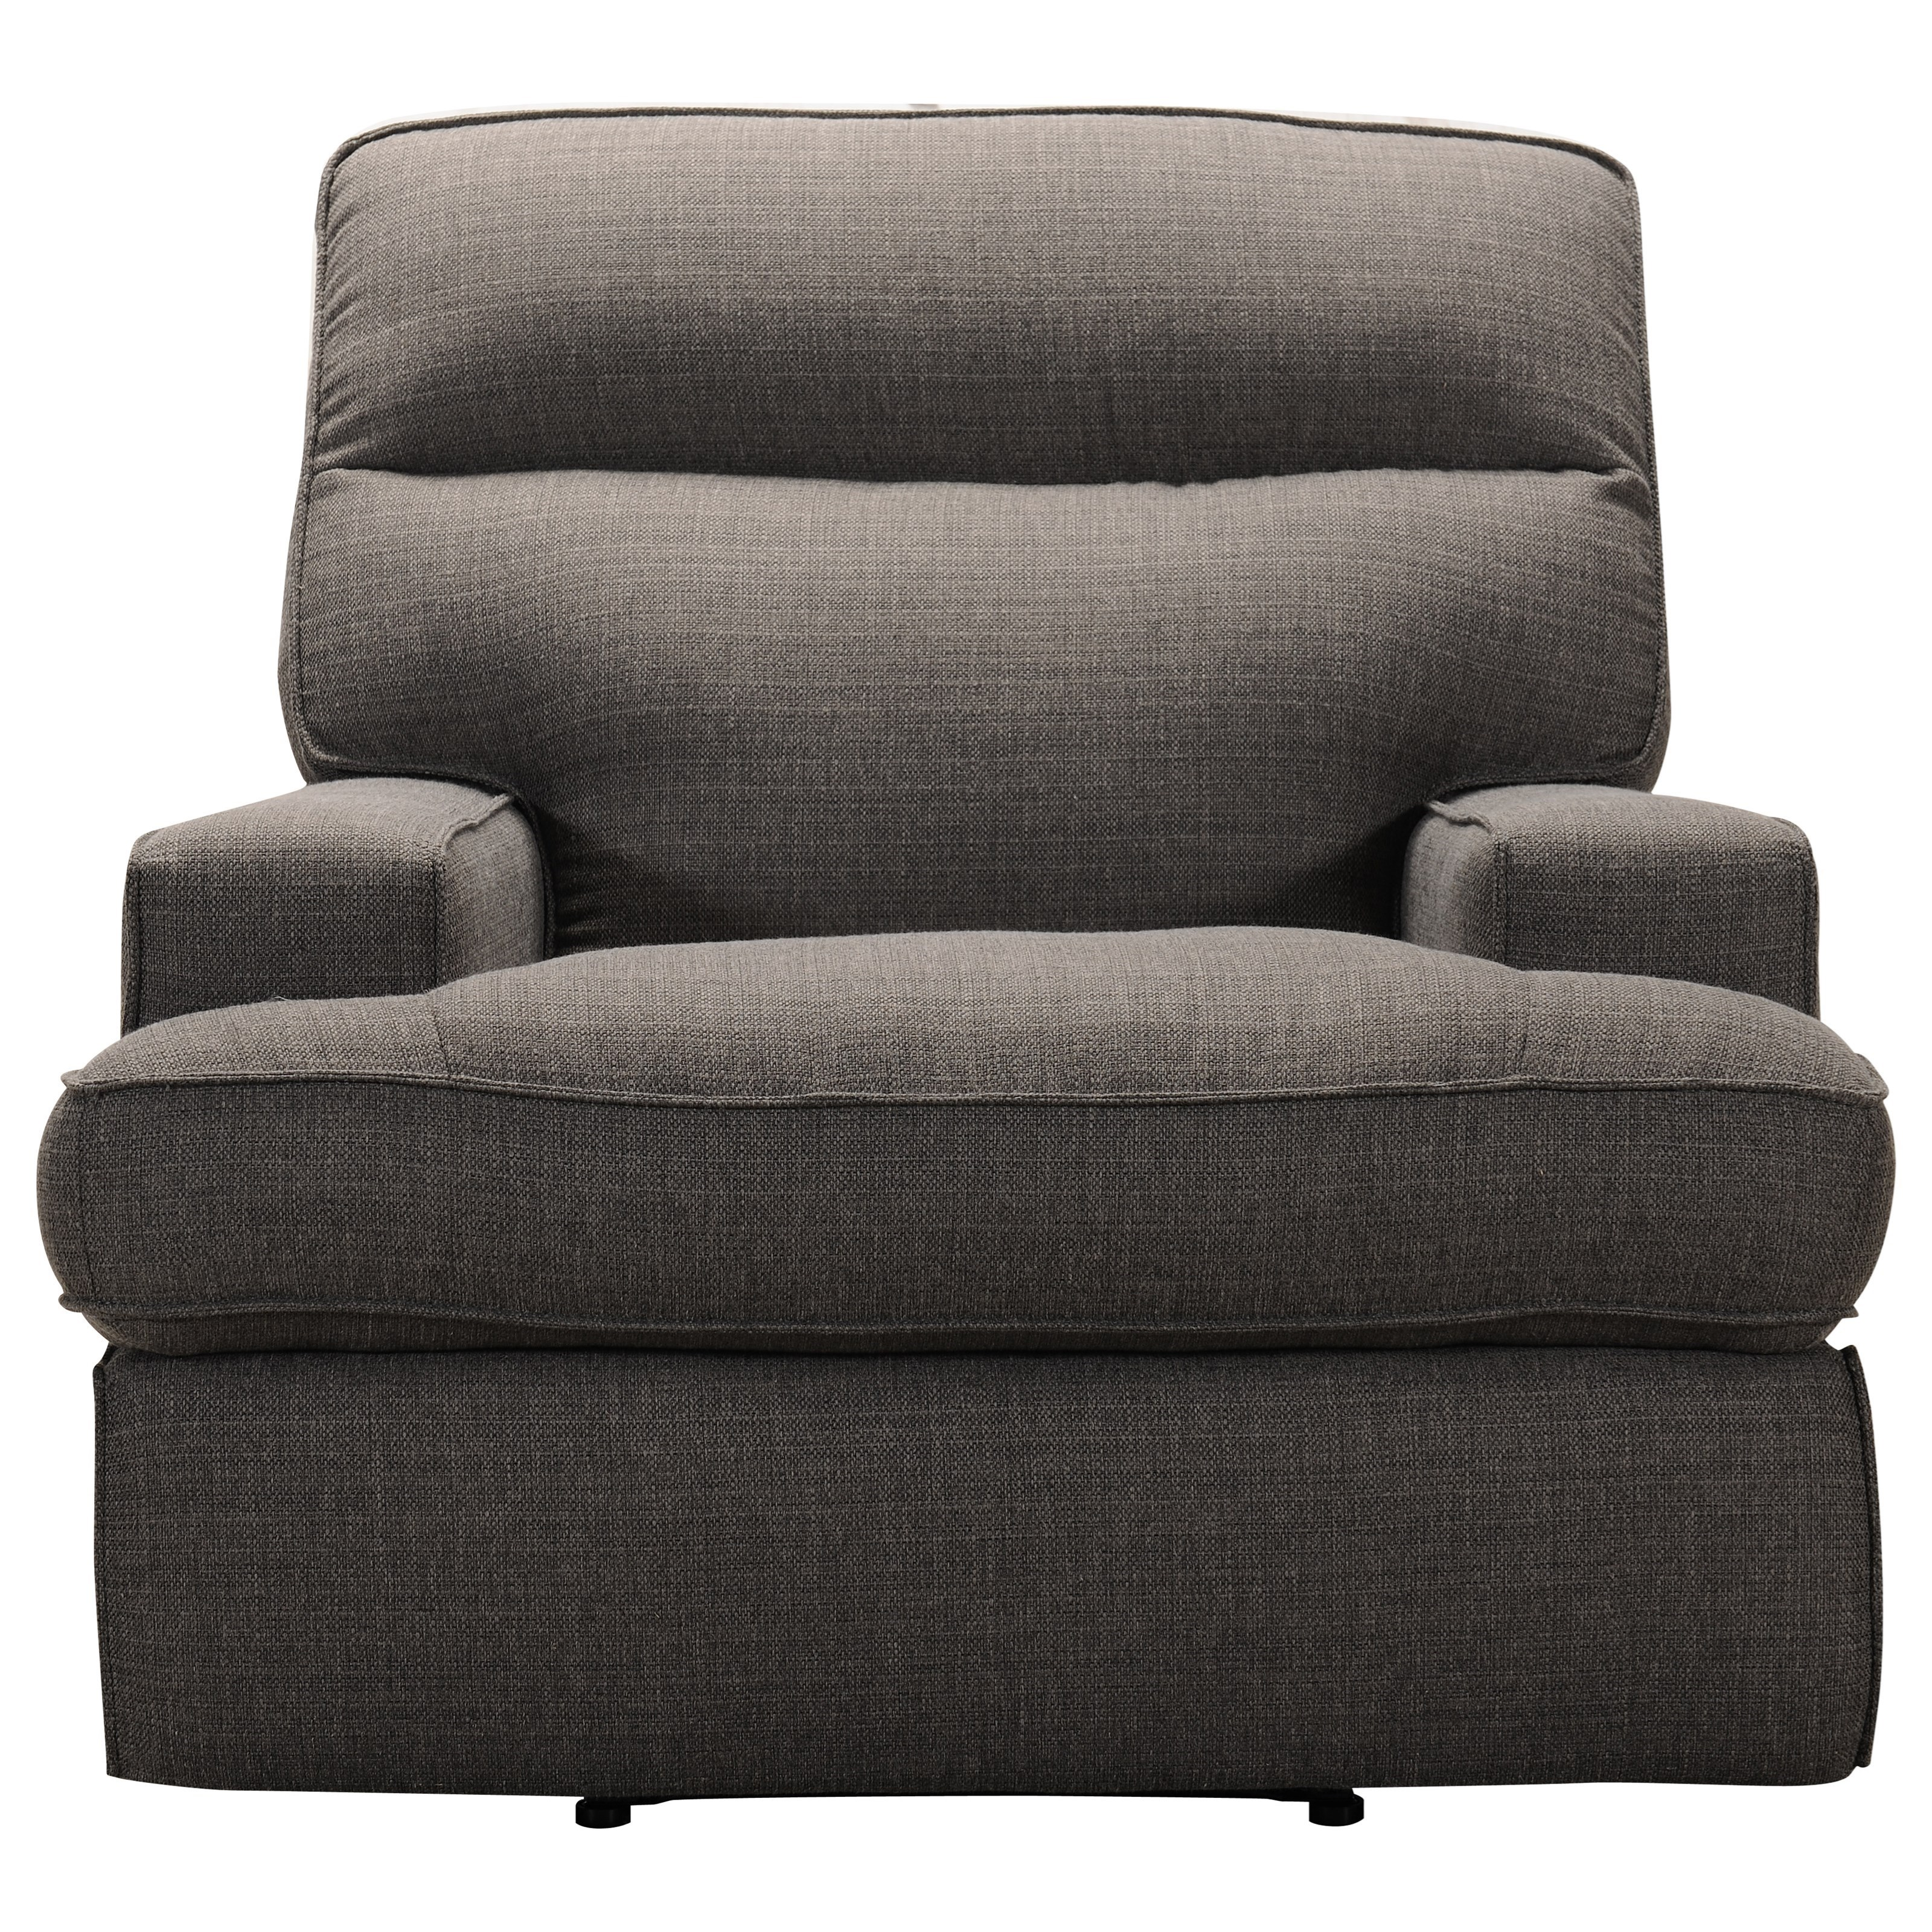 32146 Power Recliner w/ Pwr Headrest by Violino at Furniture Superstore - Rochester, MN